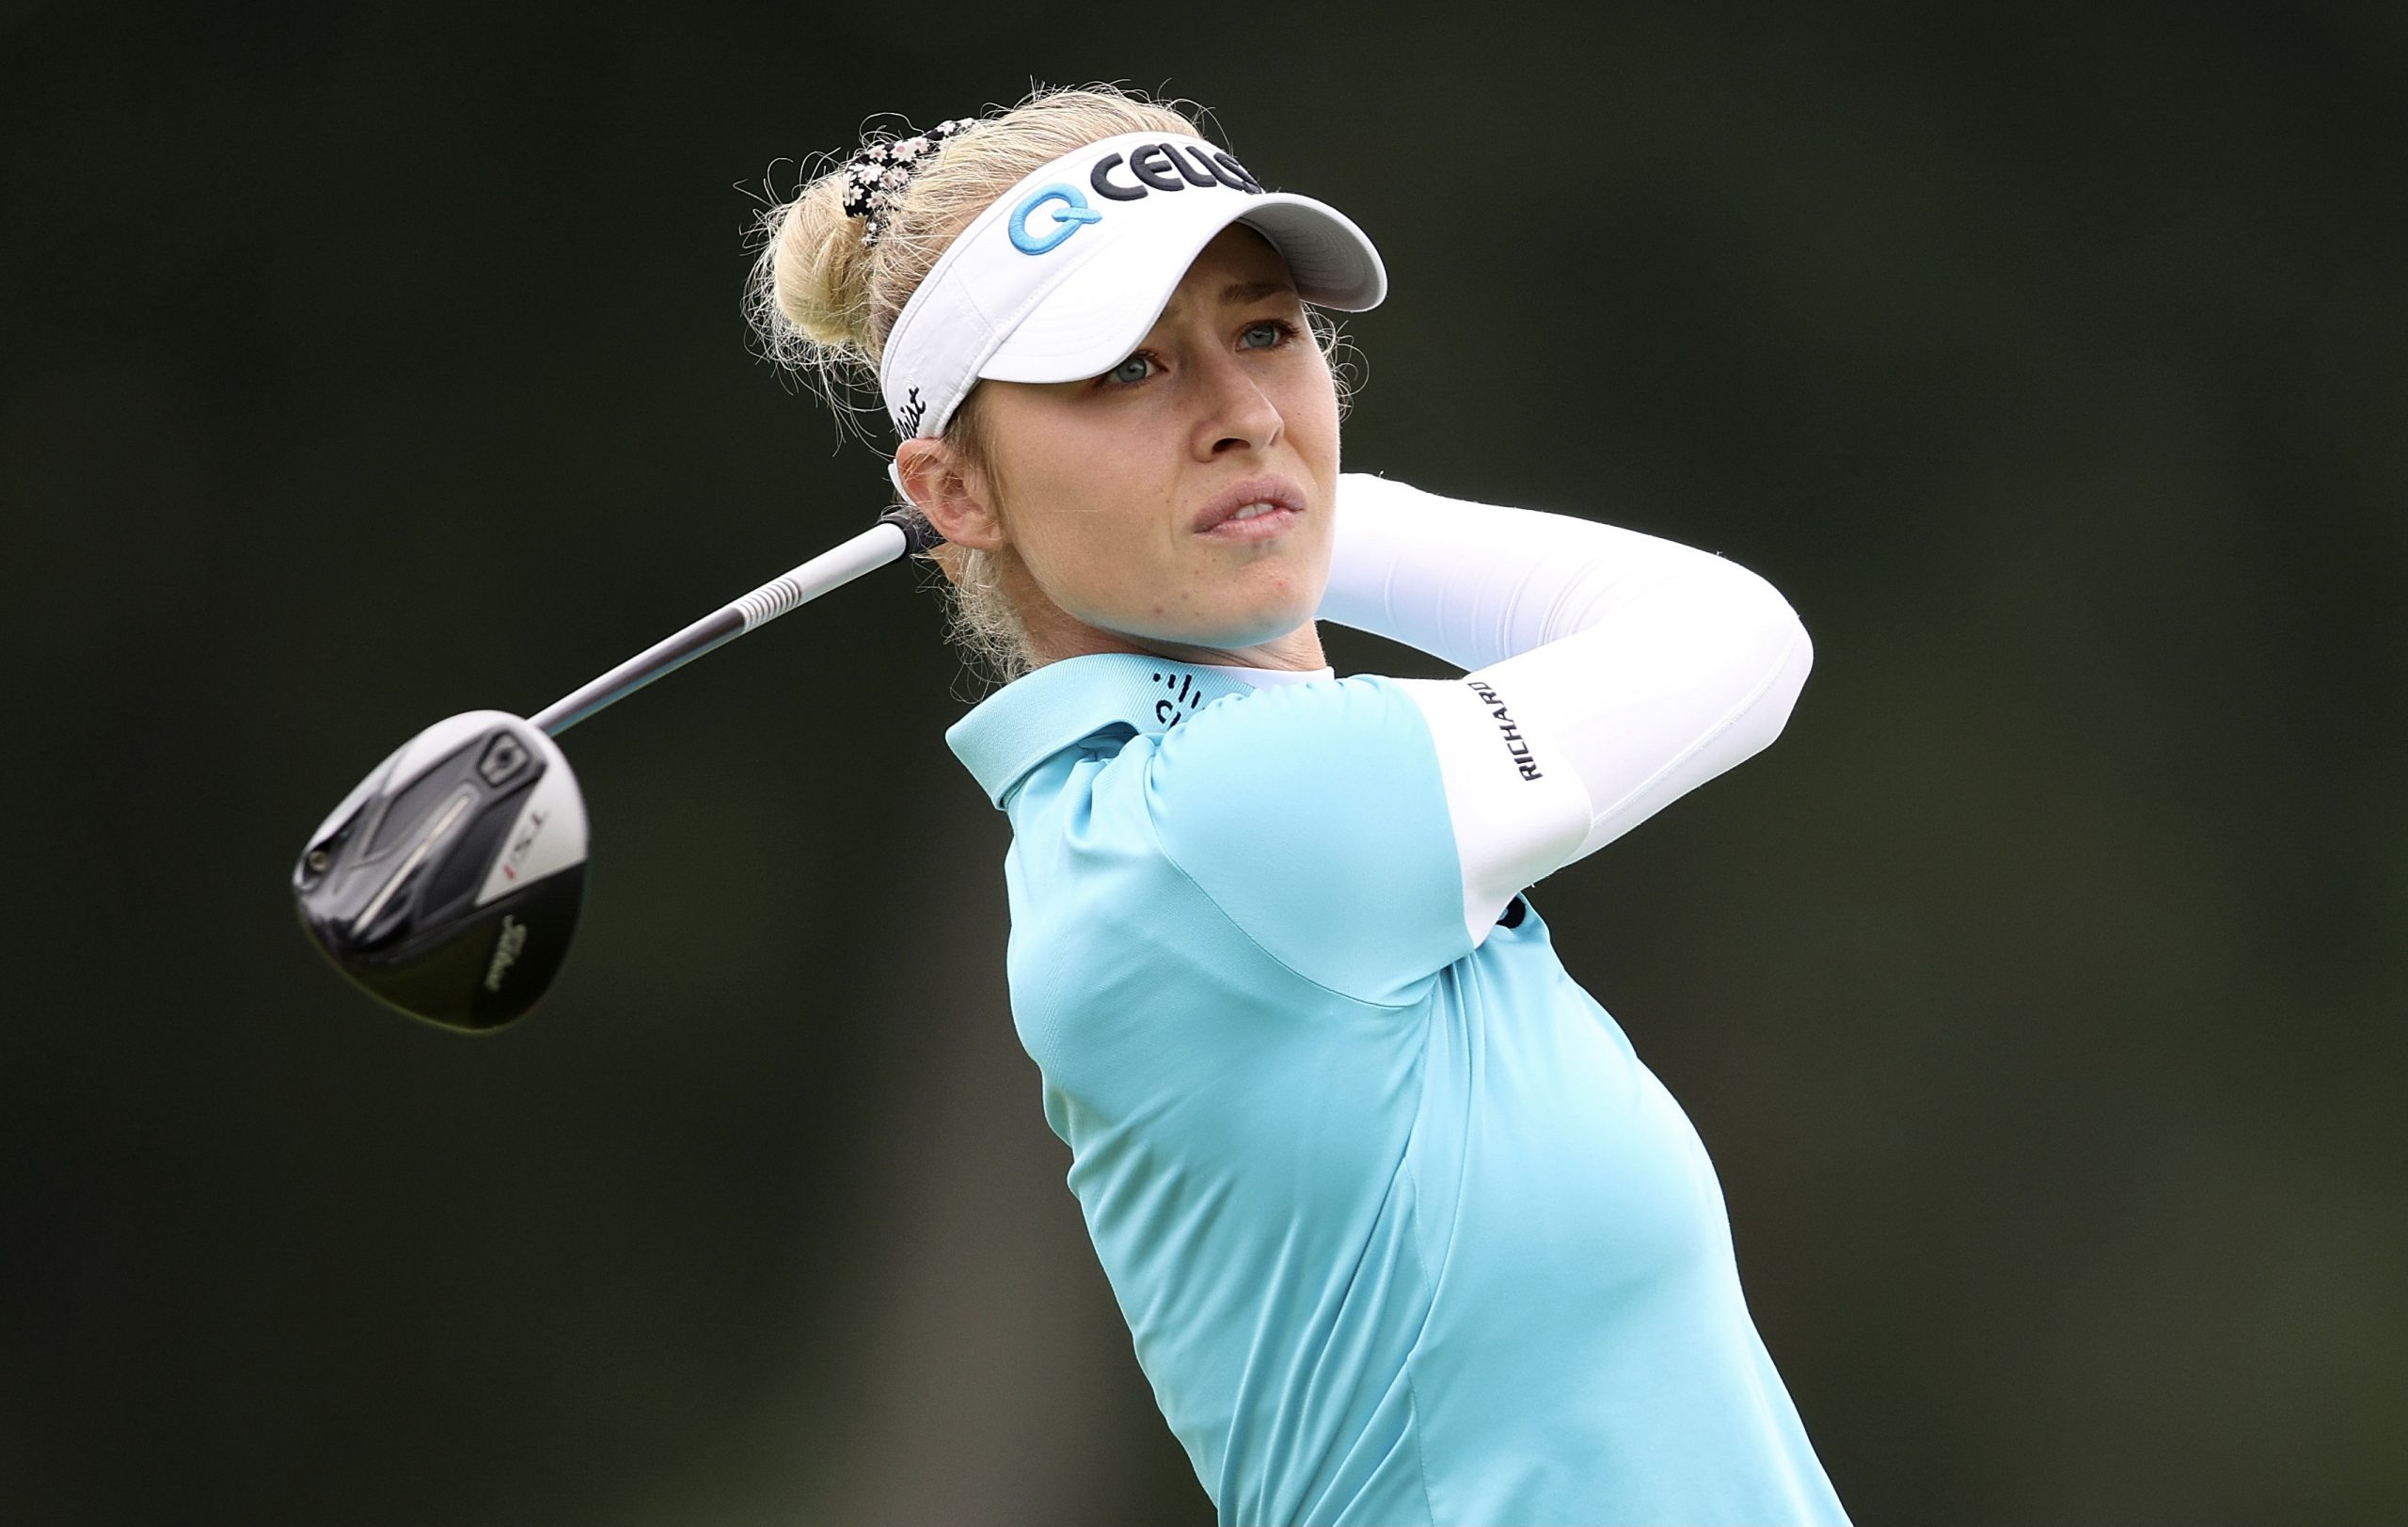 World number one Nelly Korda confirmed for ATS New York 2